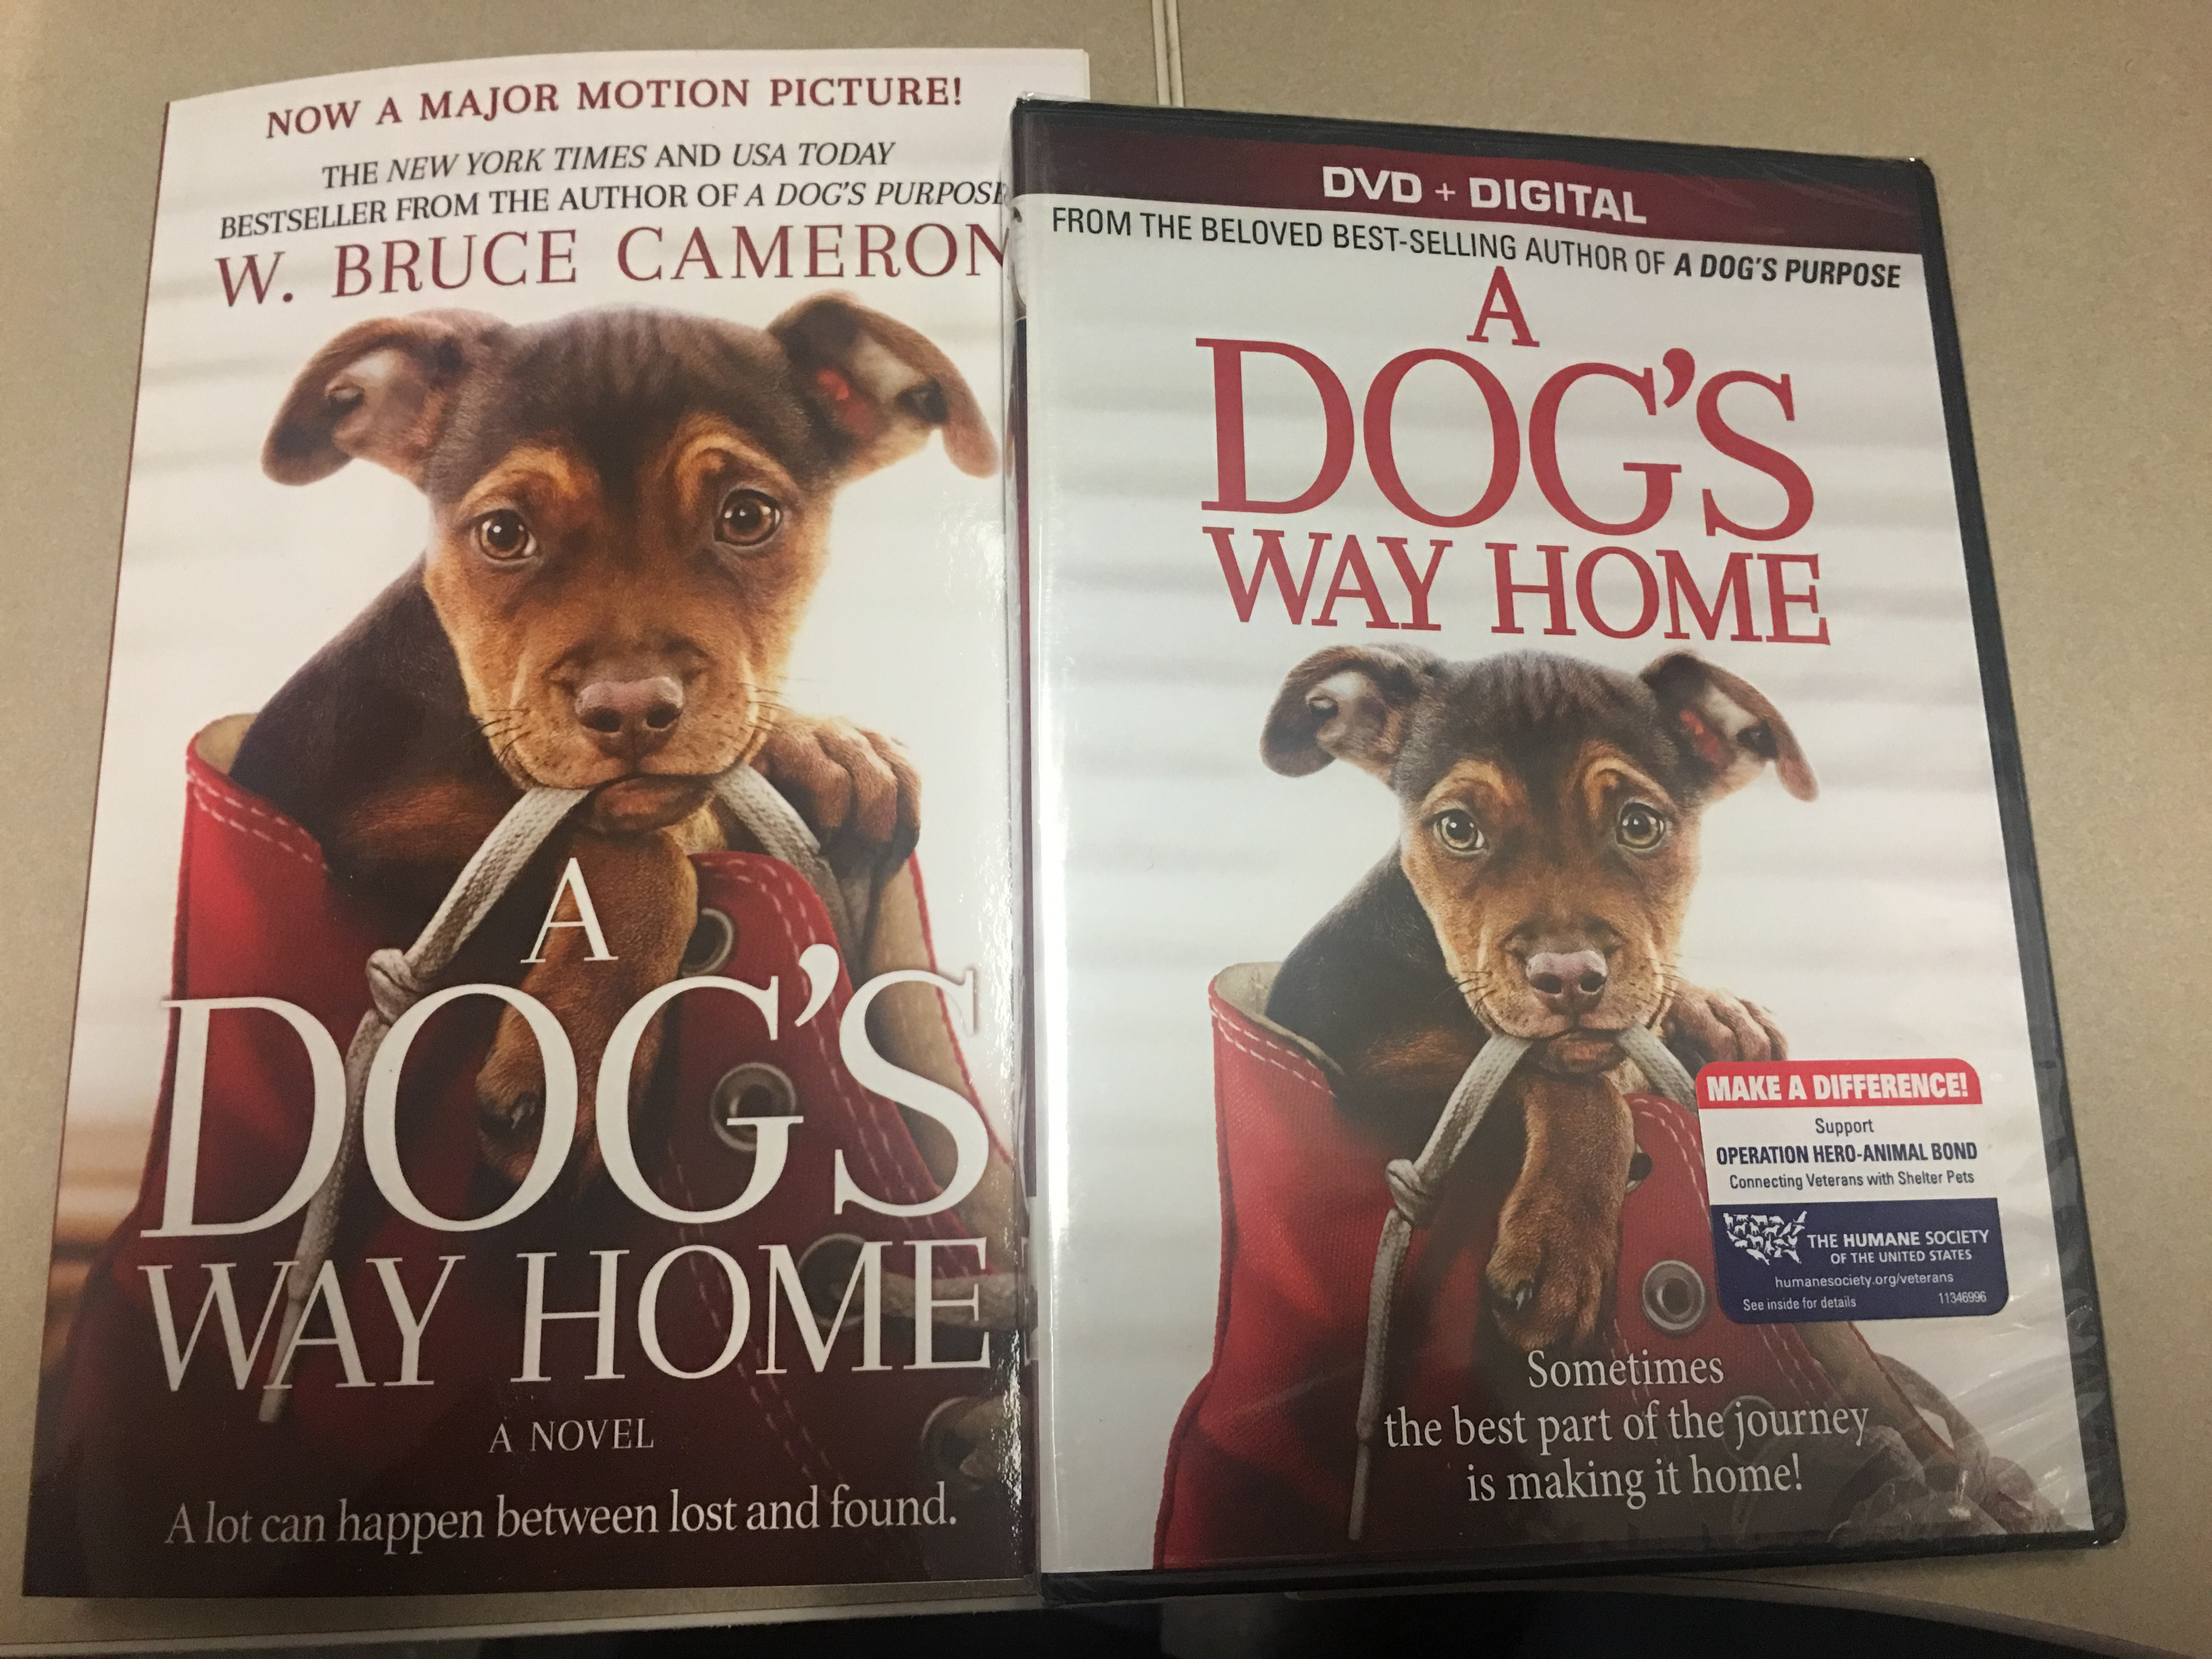 A Dog's Life DVD and Book Giveaway